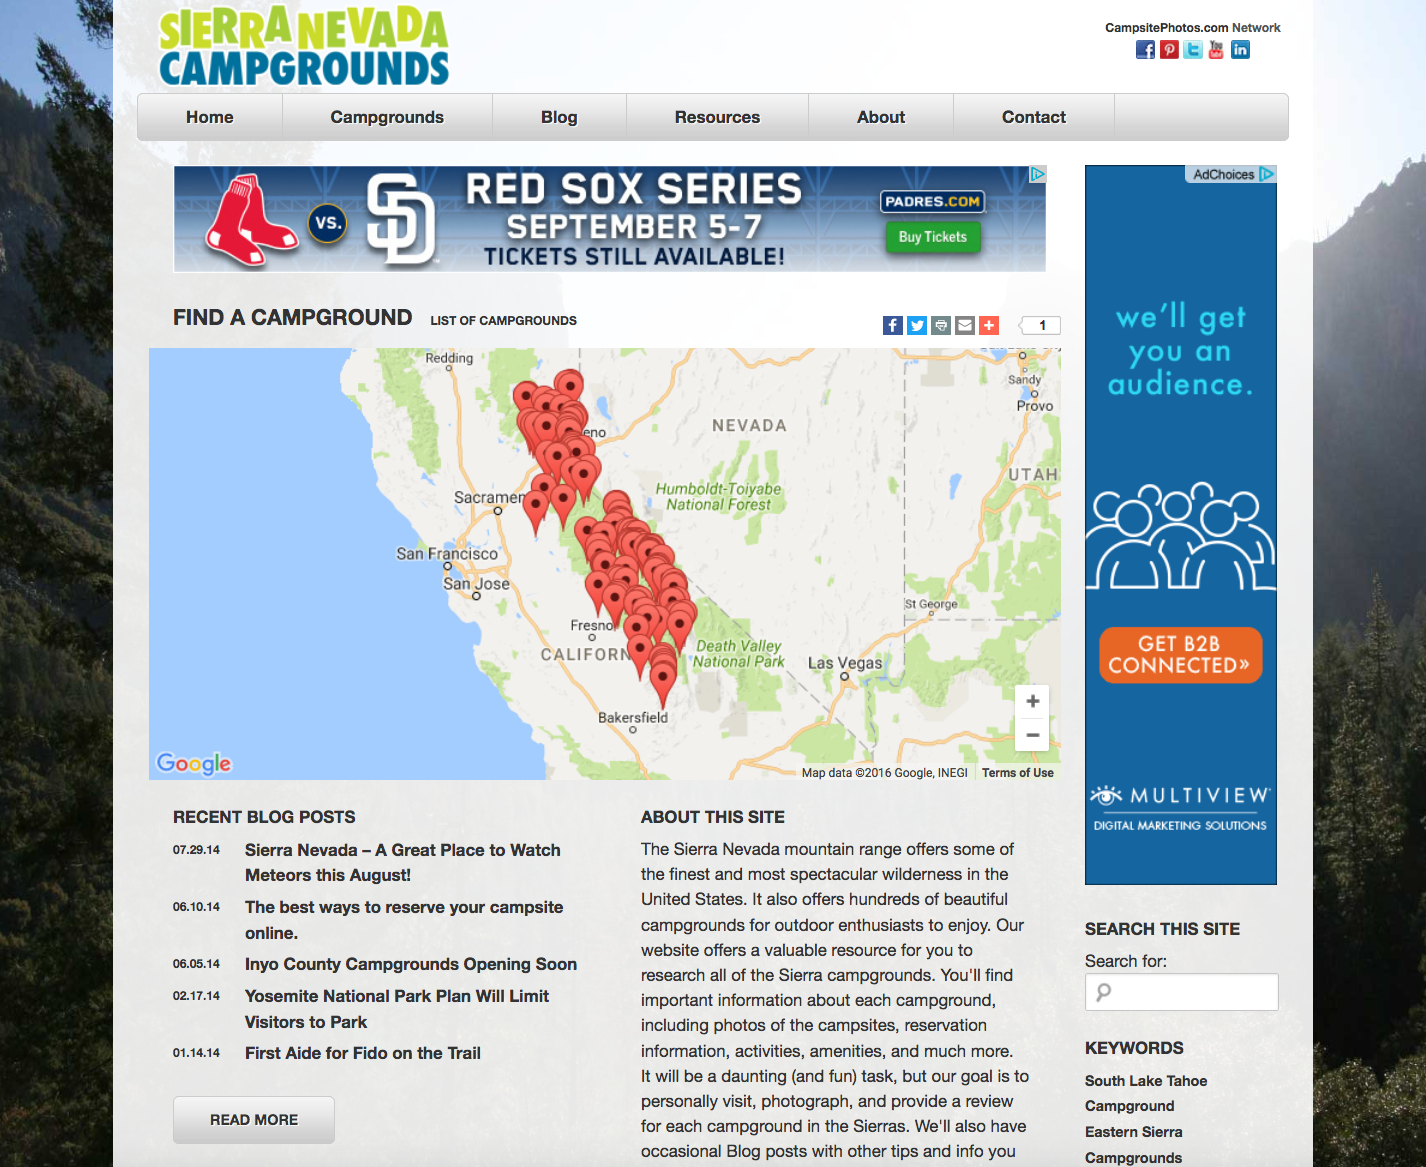 Sierra Nevada Campgrounds